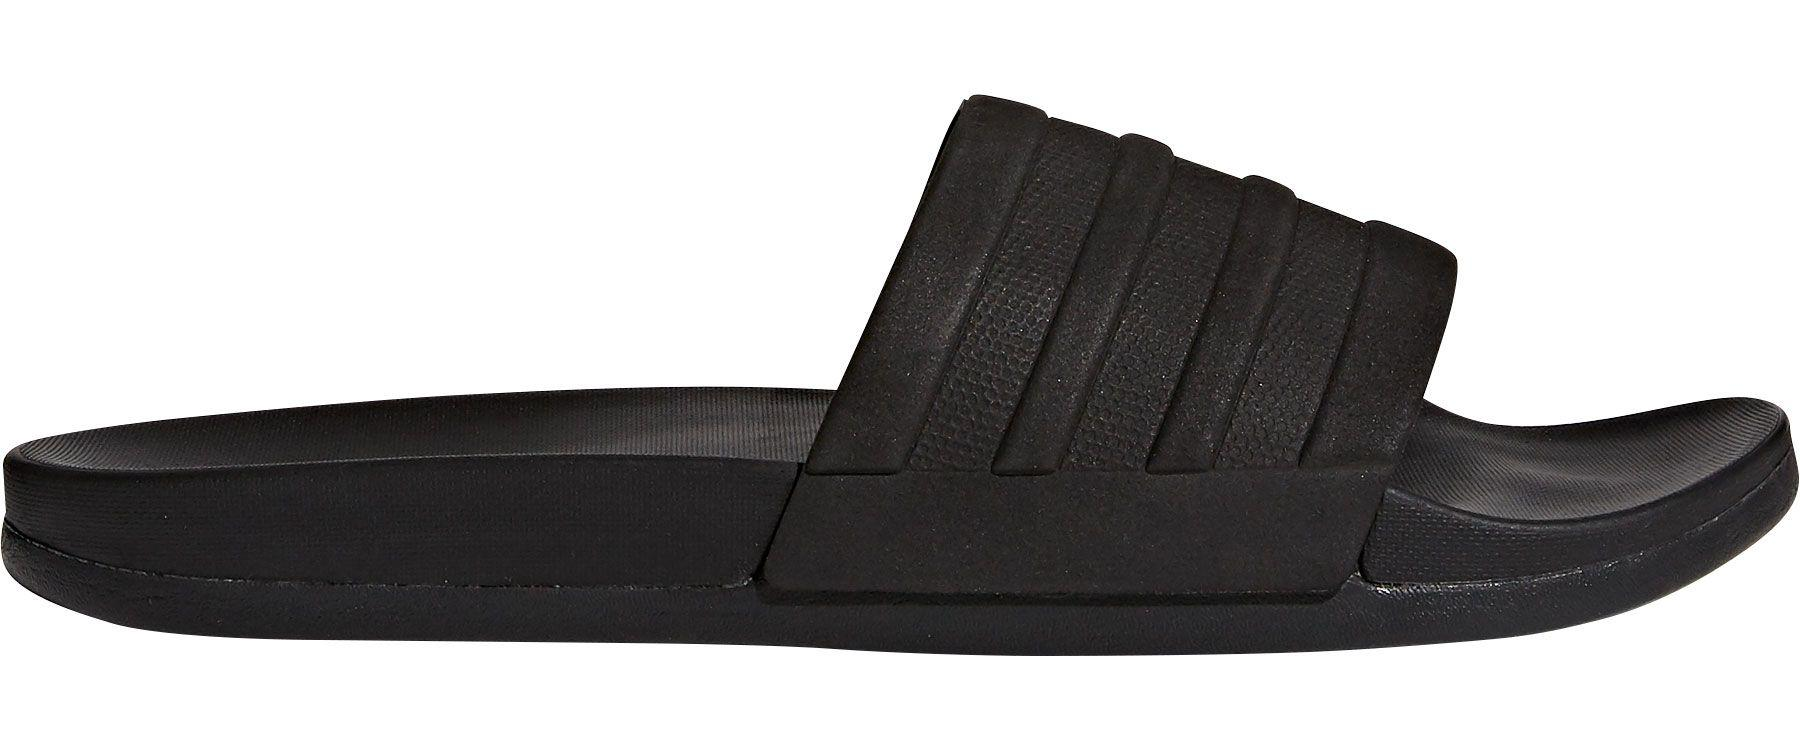 e408b8080 Lyst - adidas Adilette Cloudfoam Plus Mono Slides in Black for Men